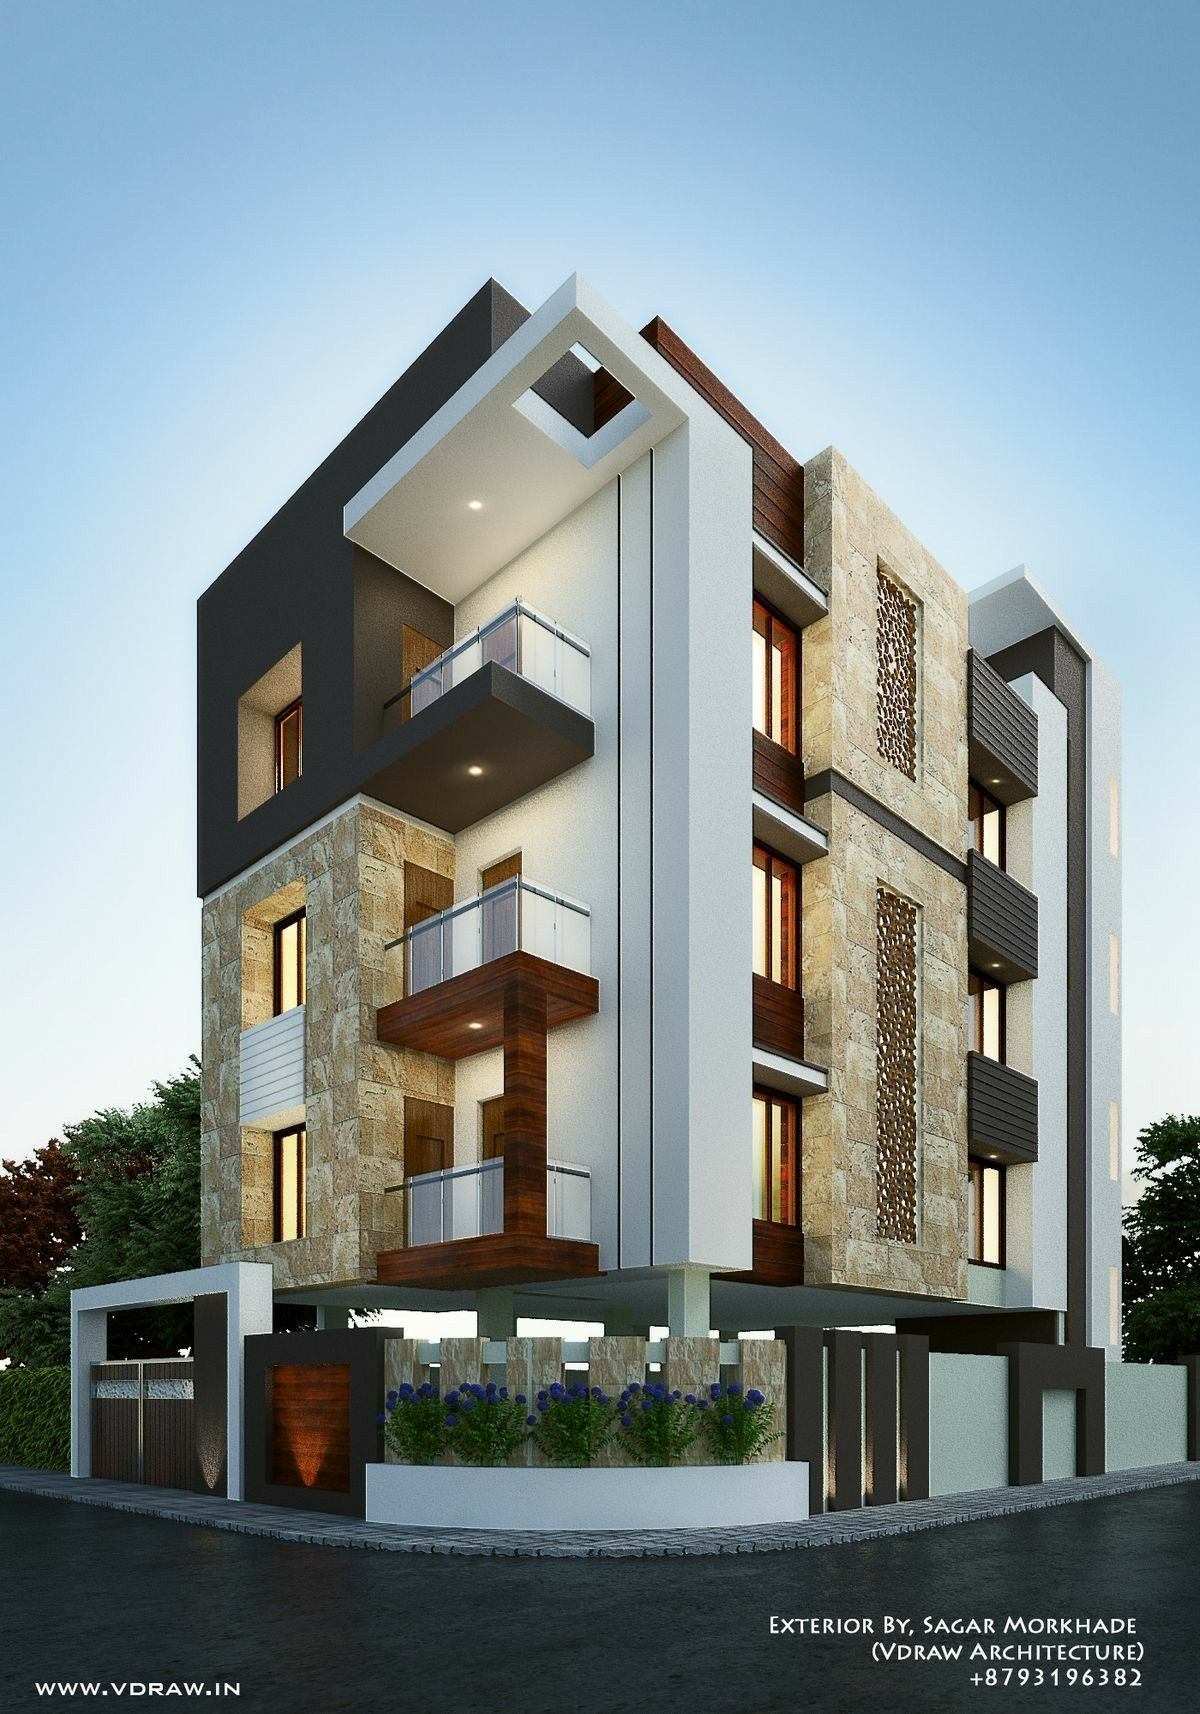 Exterior By Sagar Morkhade Vdraw Architecture 8793196382: Pin By Shahzad Khan On Decorative Stand In 2019